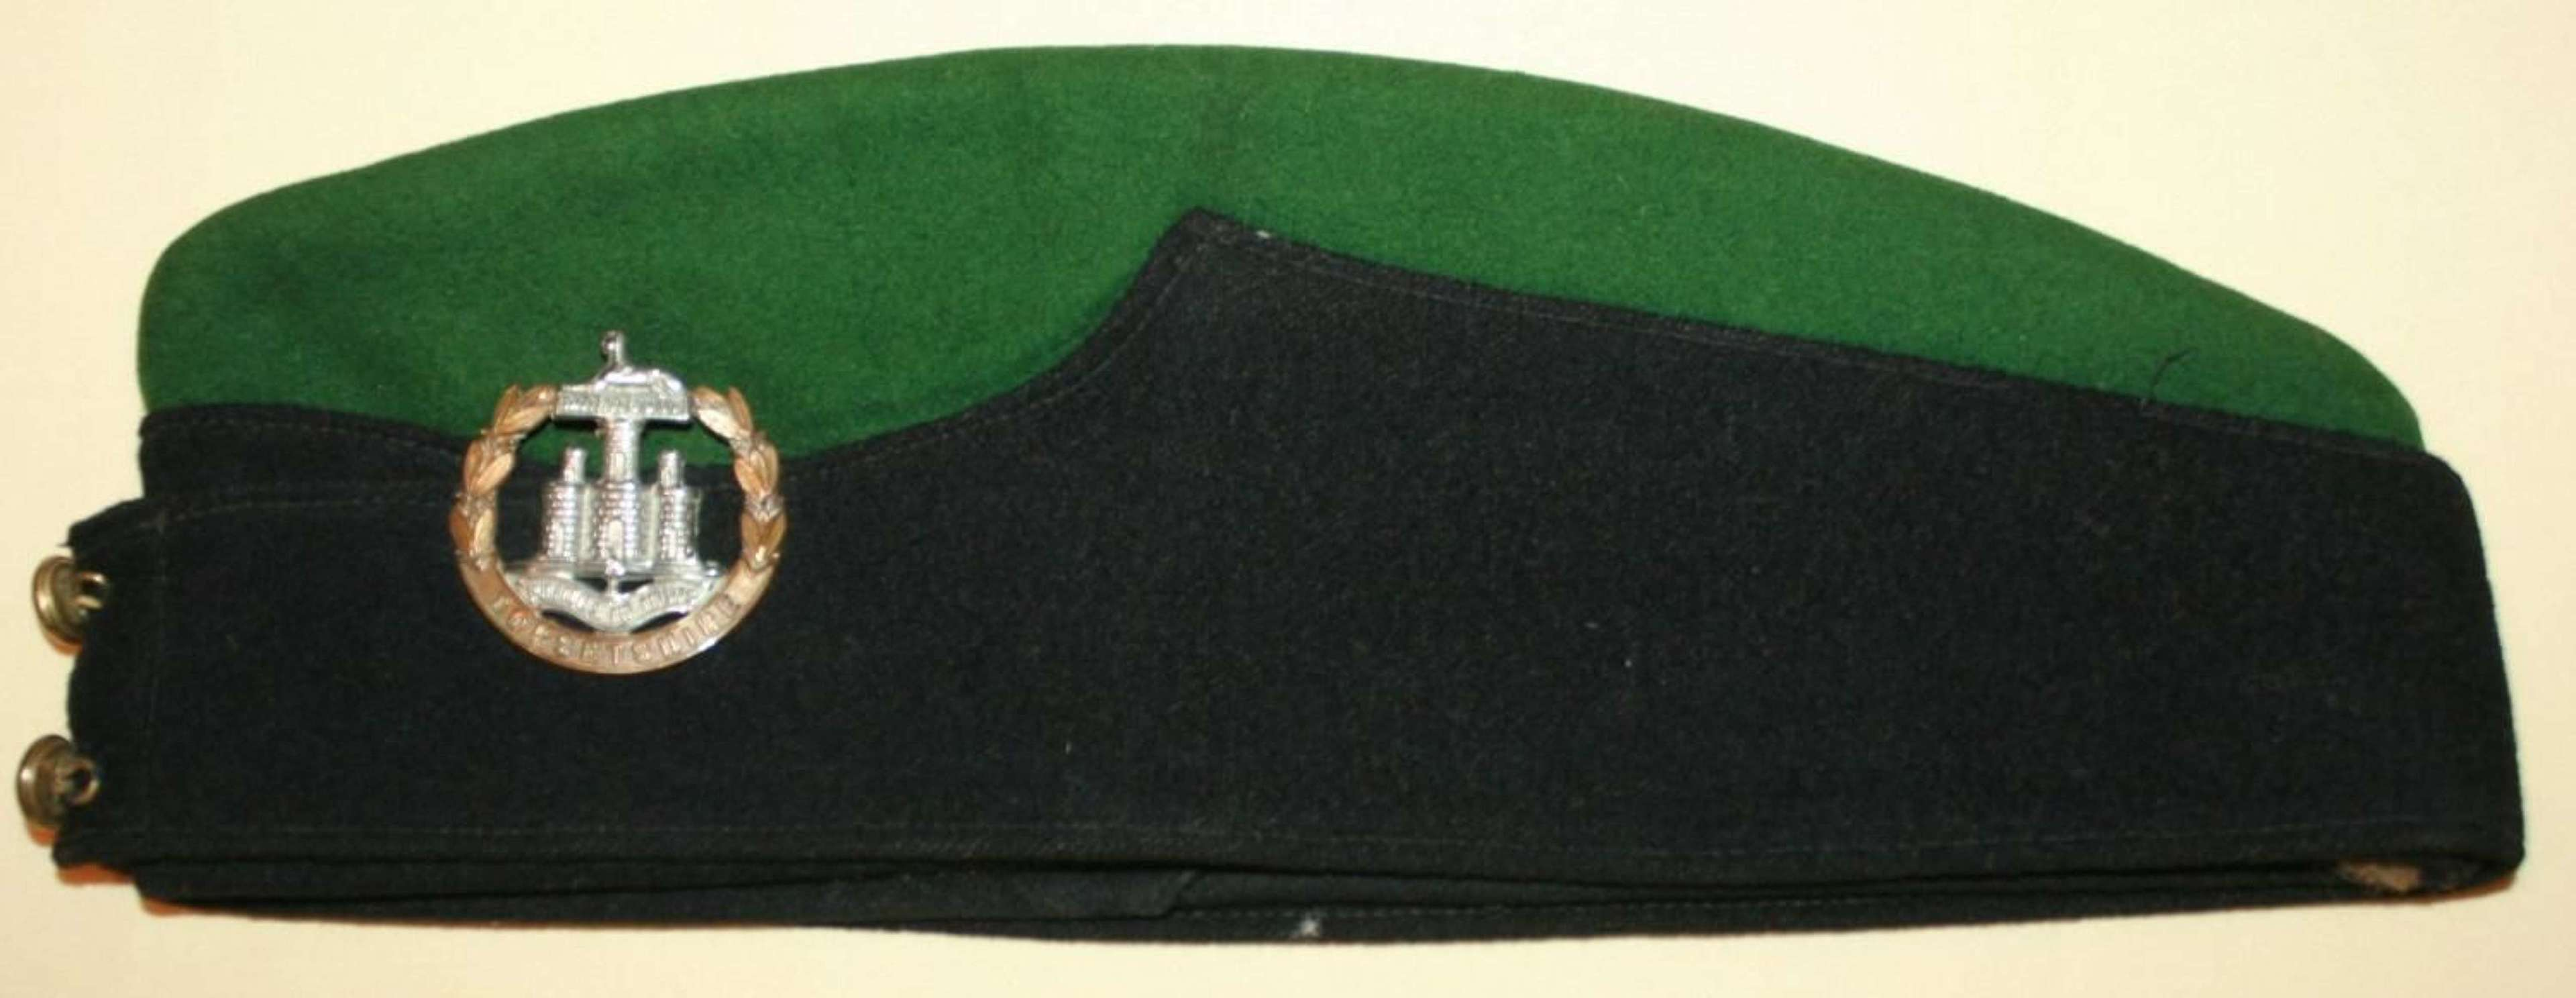 A WWII PERIOD OTHER RANKS DORSET'S SIDE CAP